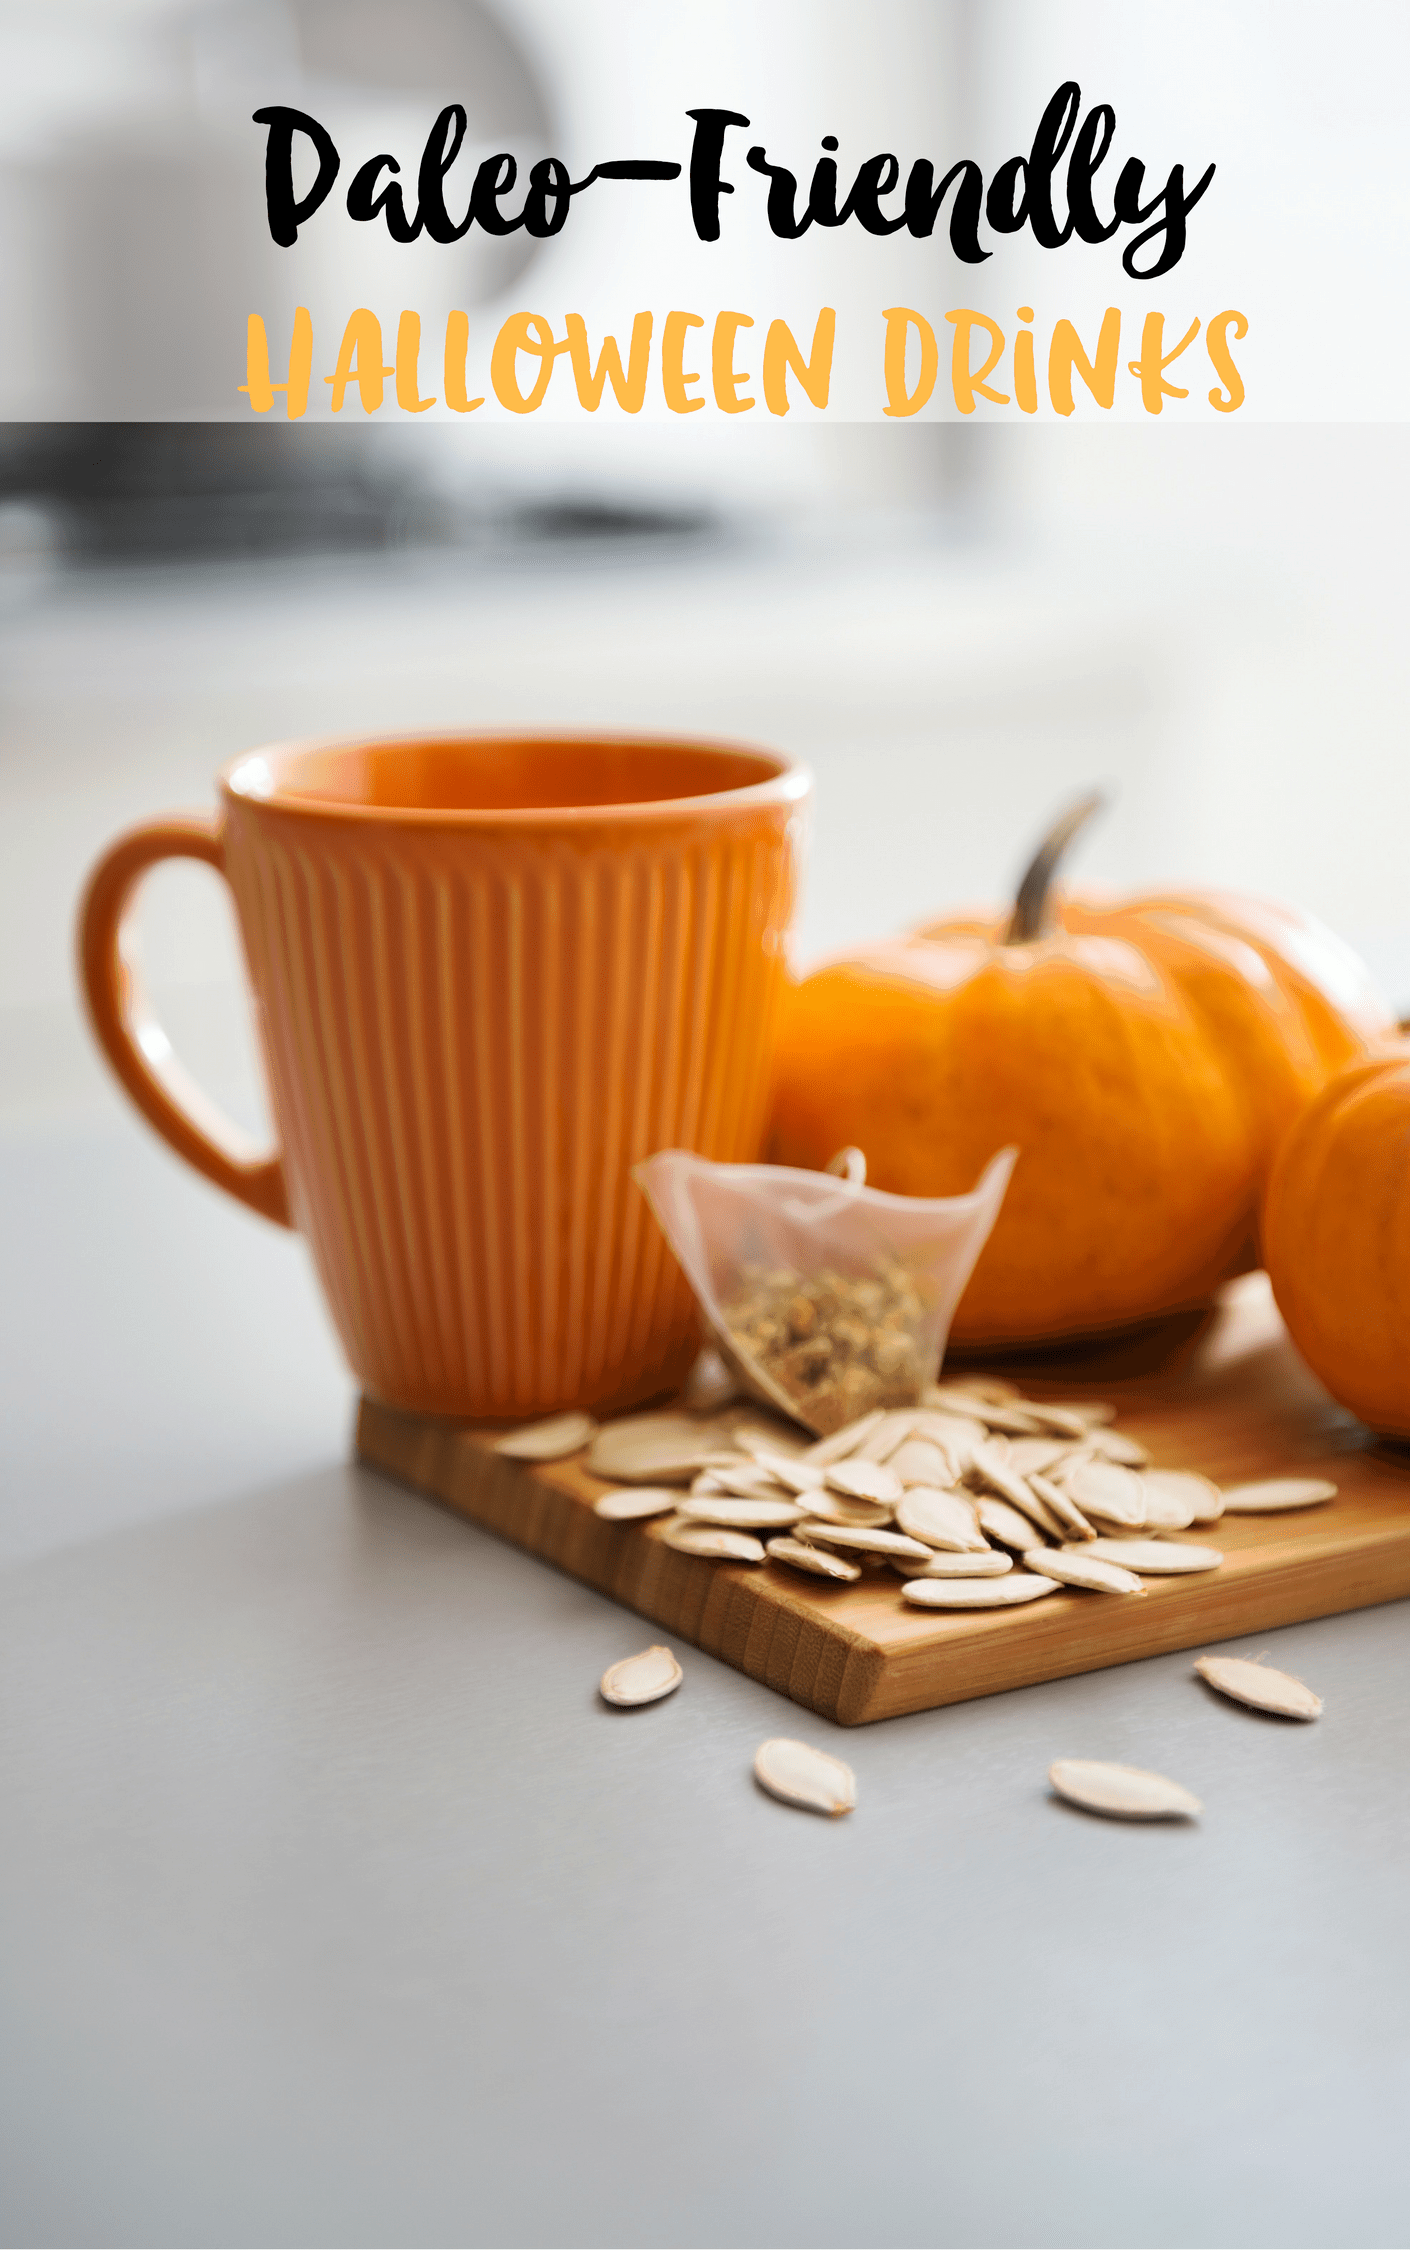 Paleo-Friendly Drinks for Halloween